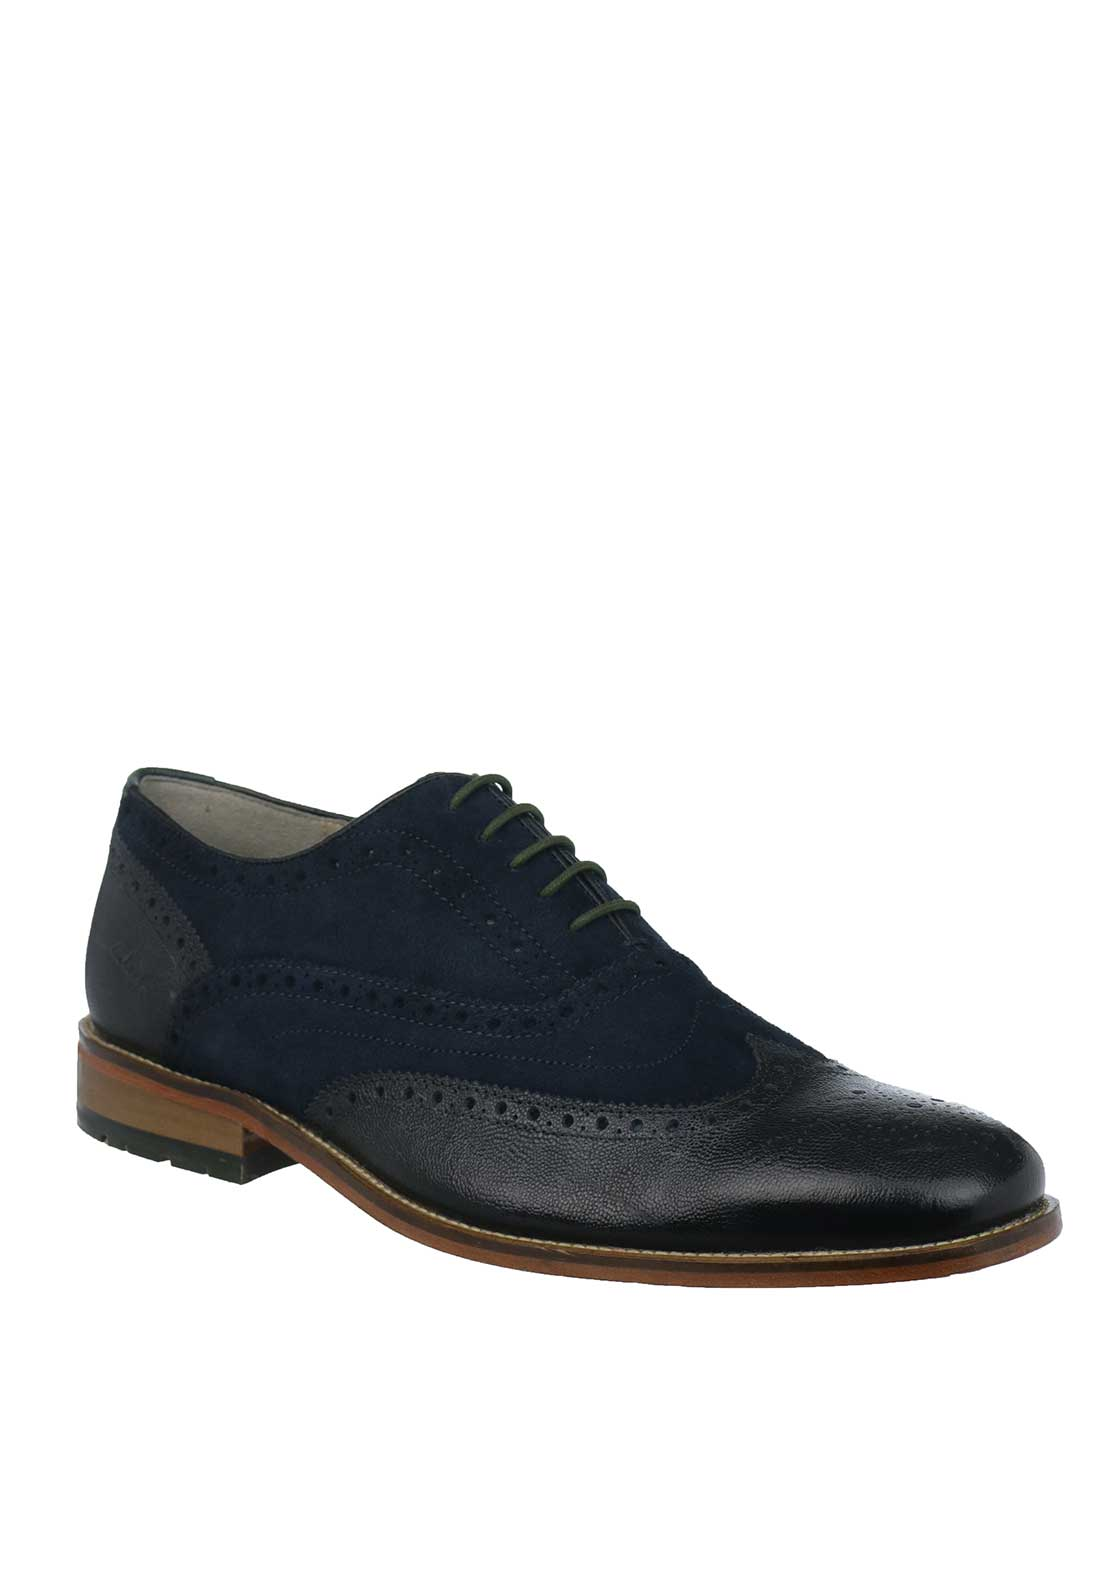 Clarks Mens Penton Limit Brogue Shoes, Navy